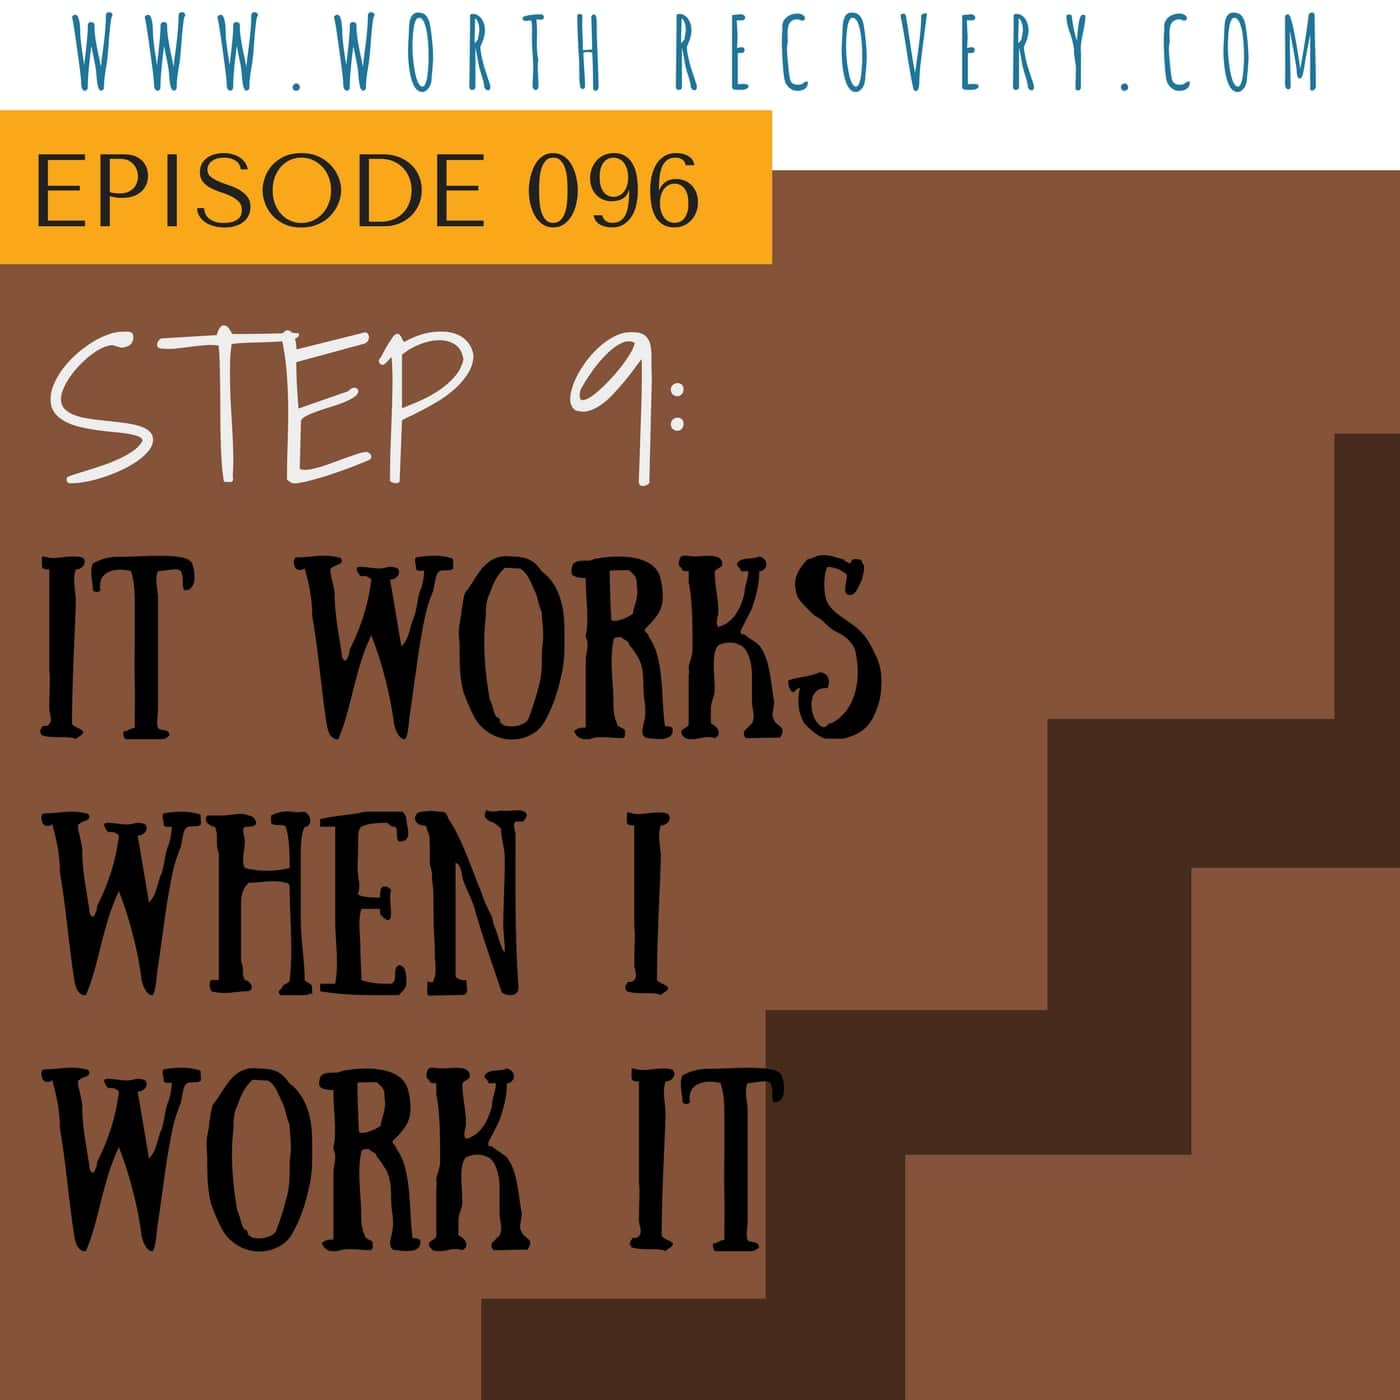 Episode 096:  Step 9 - It Works When I Work It